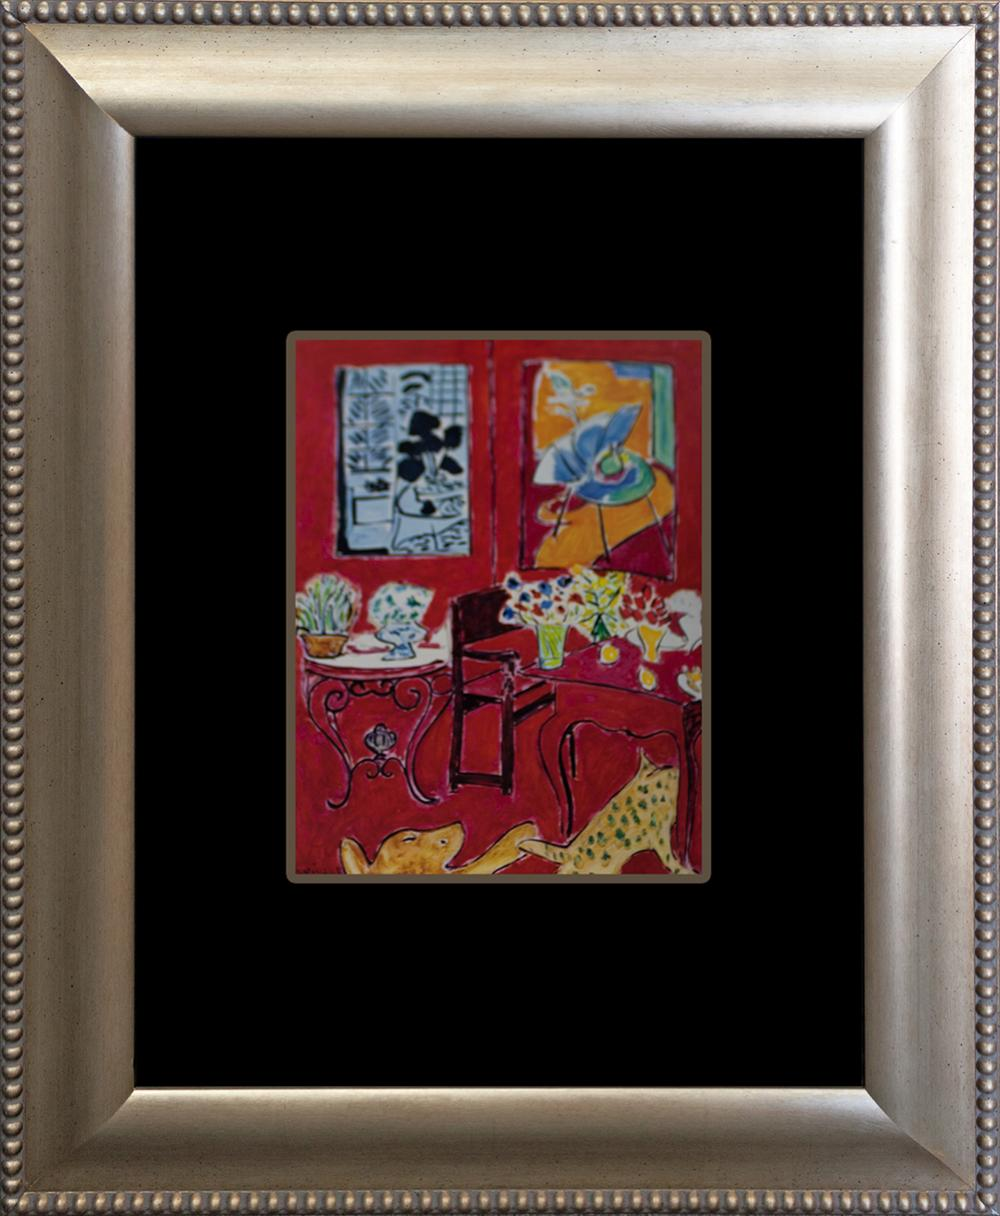 Lot 3189: Henri Matisse Litho - The Red Room - 45 year ago lithograph